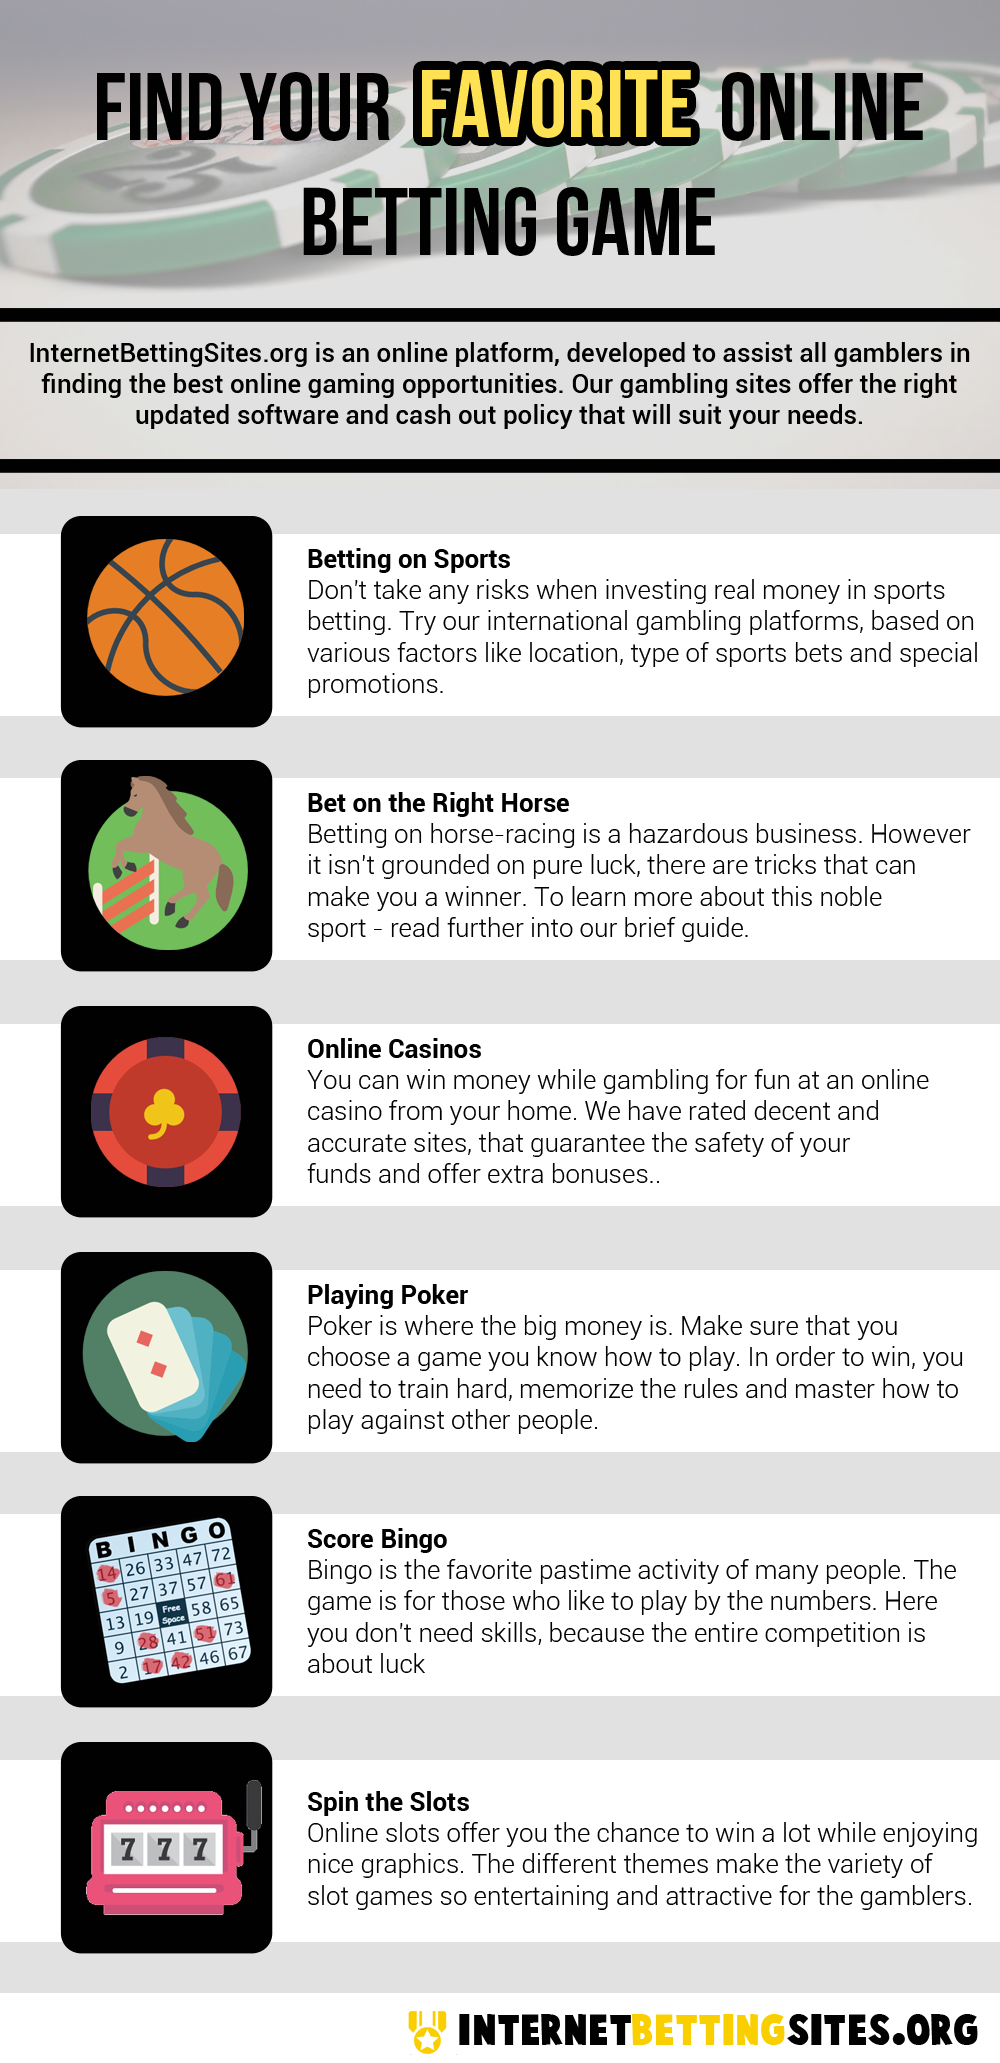 online betting sites infographic